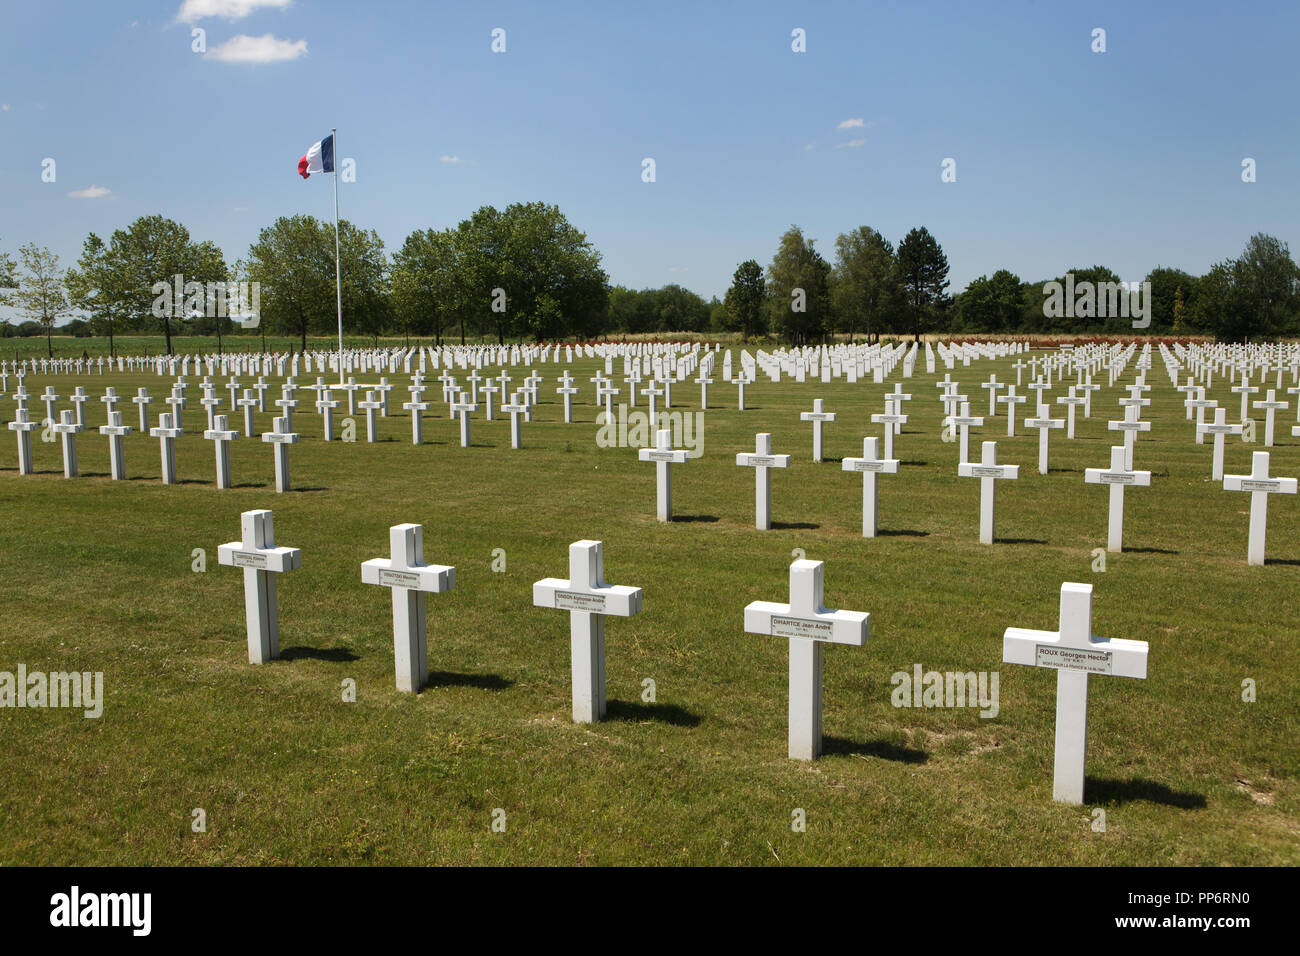 Graves of French soldiers fallen during World War II at the Suippes National Cemetery (Nécropole nationale de la Ferme de Suippes) near Suippes in Marne region in north-eastern France. Over 1,900 French soldiers fallen in June 1940 during World War II are buried at the cemetery. Stock Photo